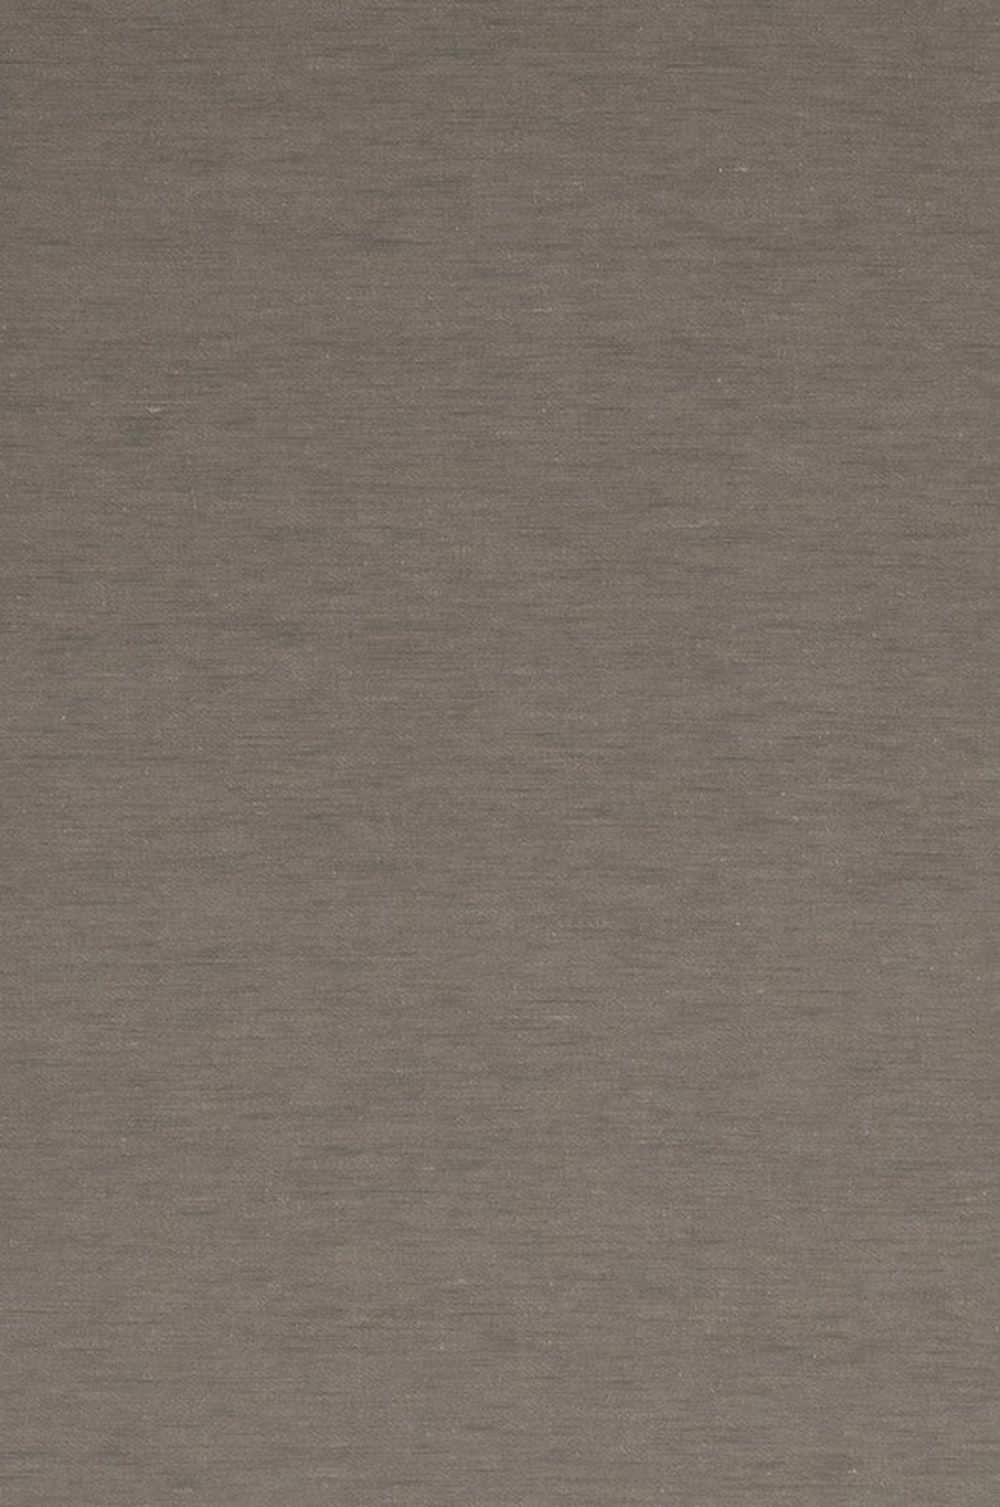 Photo of the fabric Emperor * Peppercorn swatch by Mokum. Use for Curtains, Accessory. Style of Plain, Texture